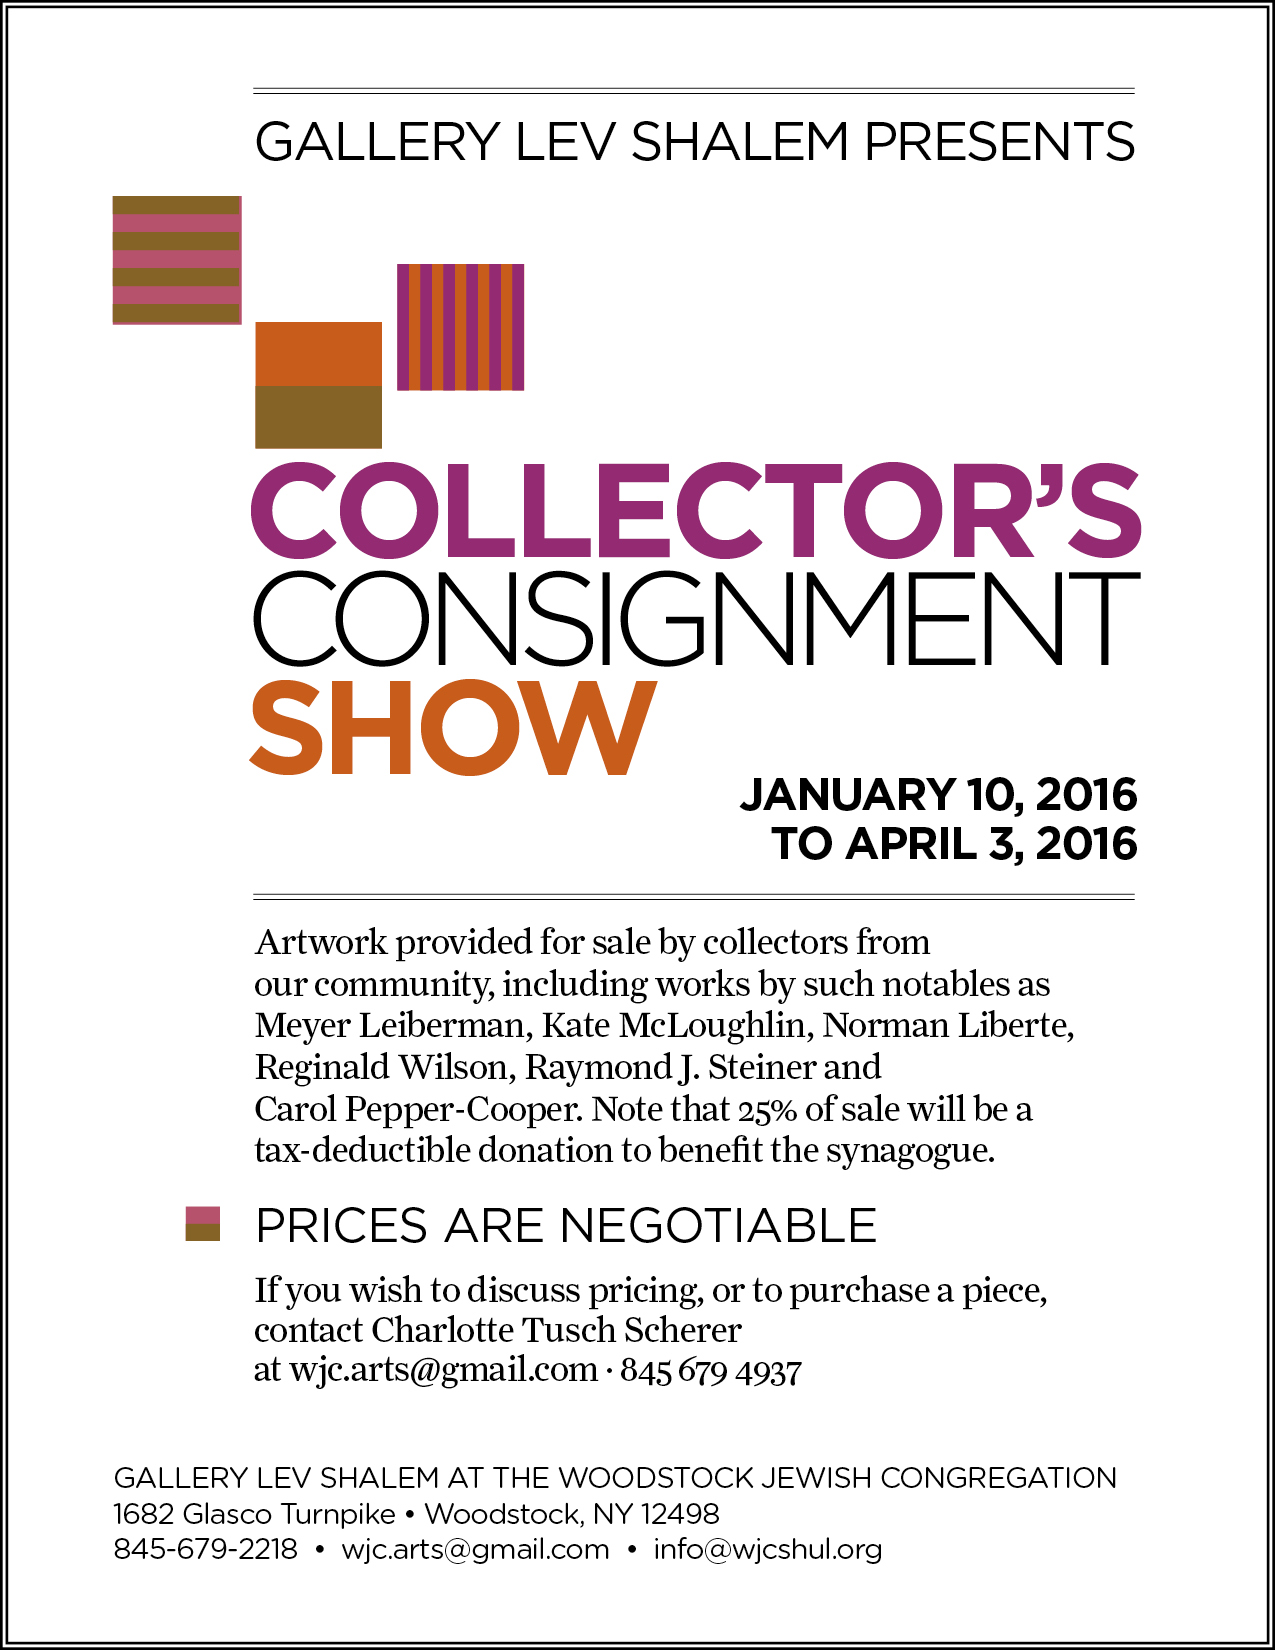 Collector's Consignment Show: January 10 - May 22, 2016